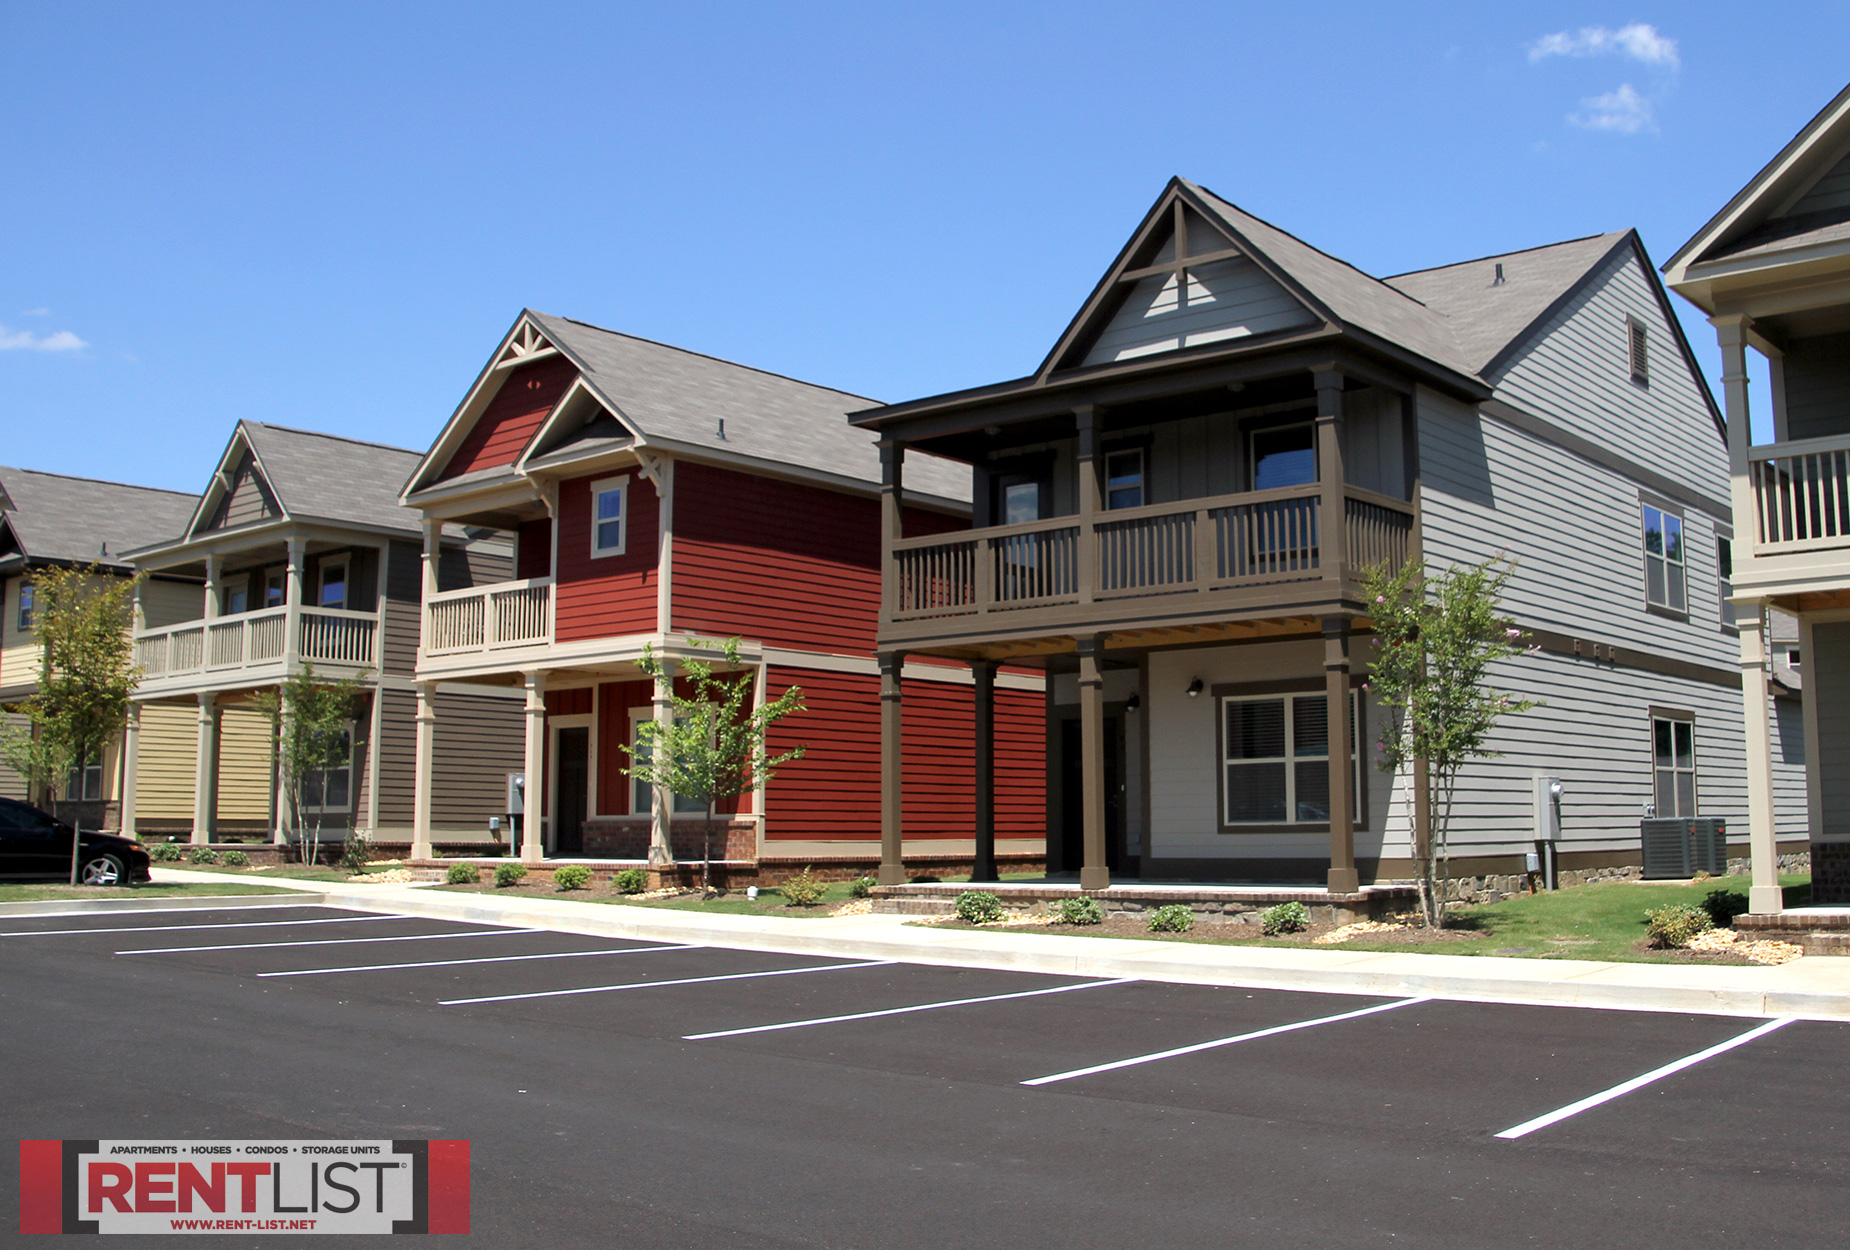 1 Bedroom Apartments Oxford Ms. Rent List U2013 Your Guide To Apartments Rental  Homes Condos